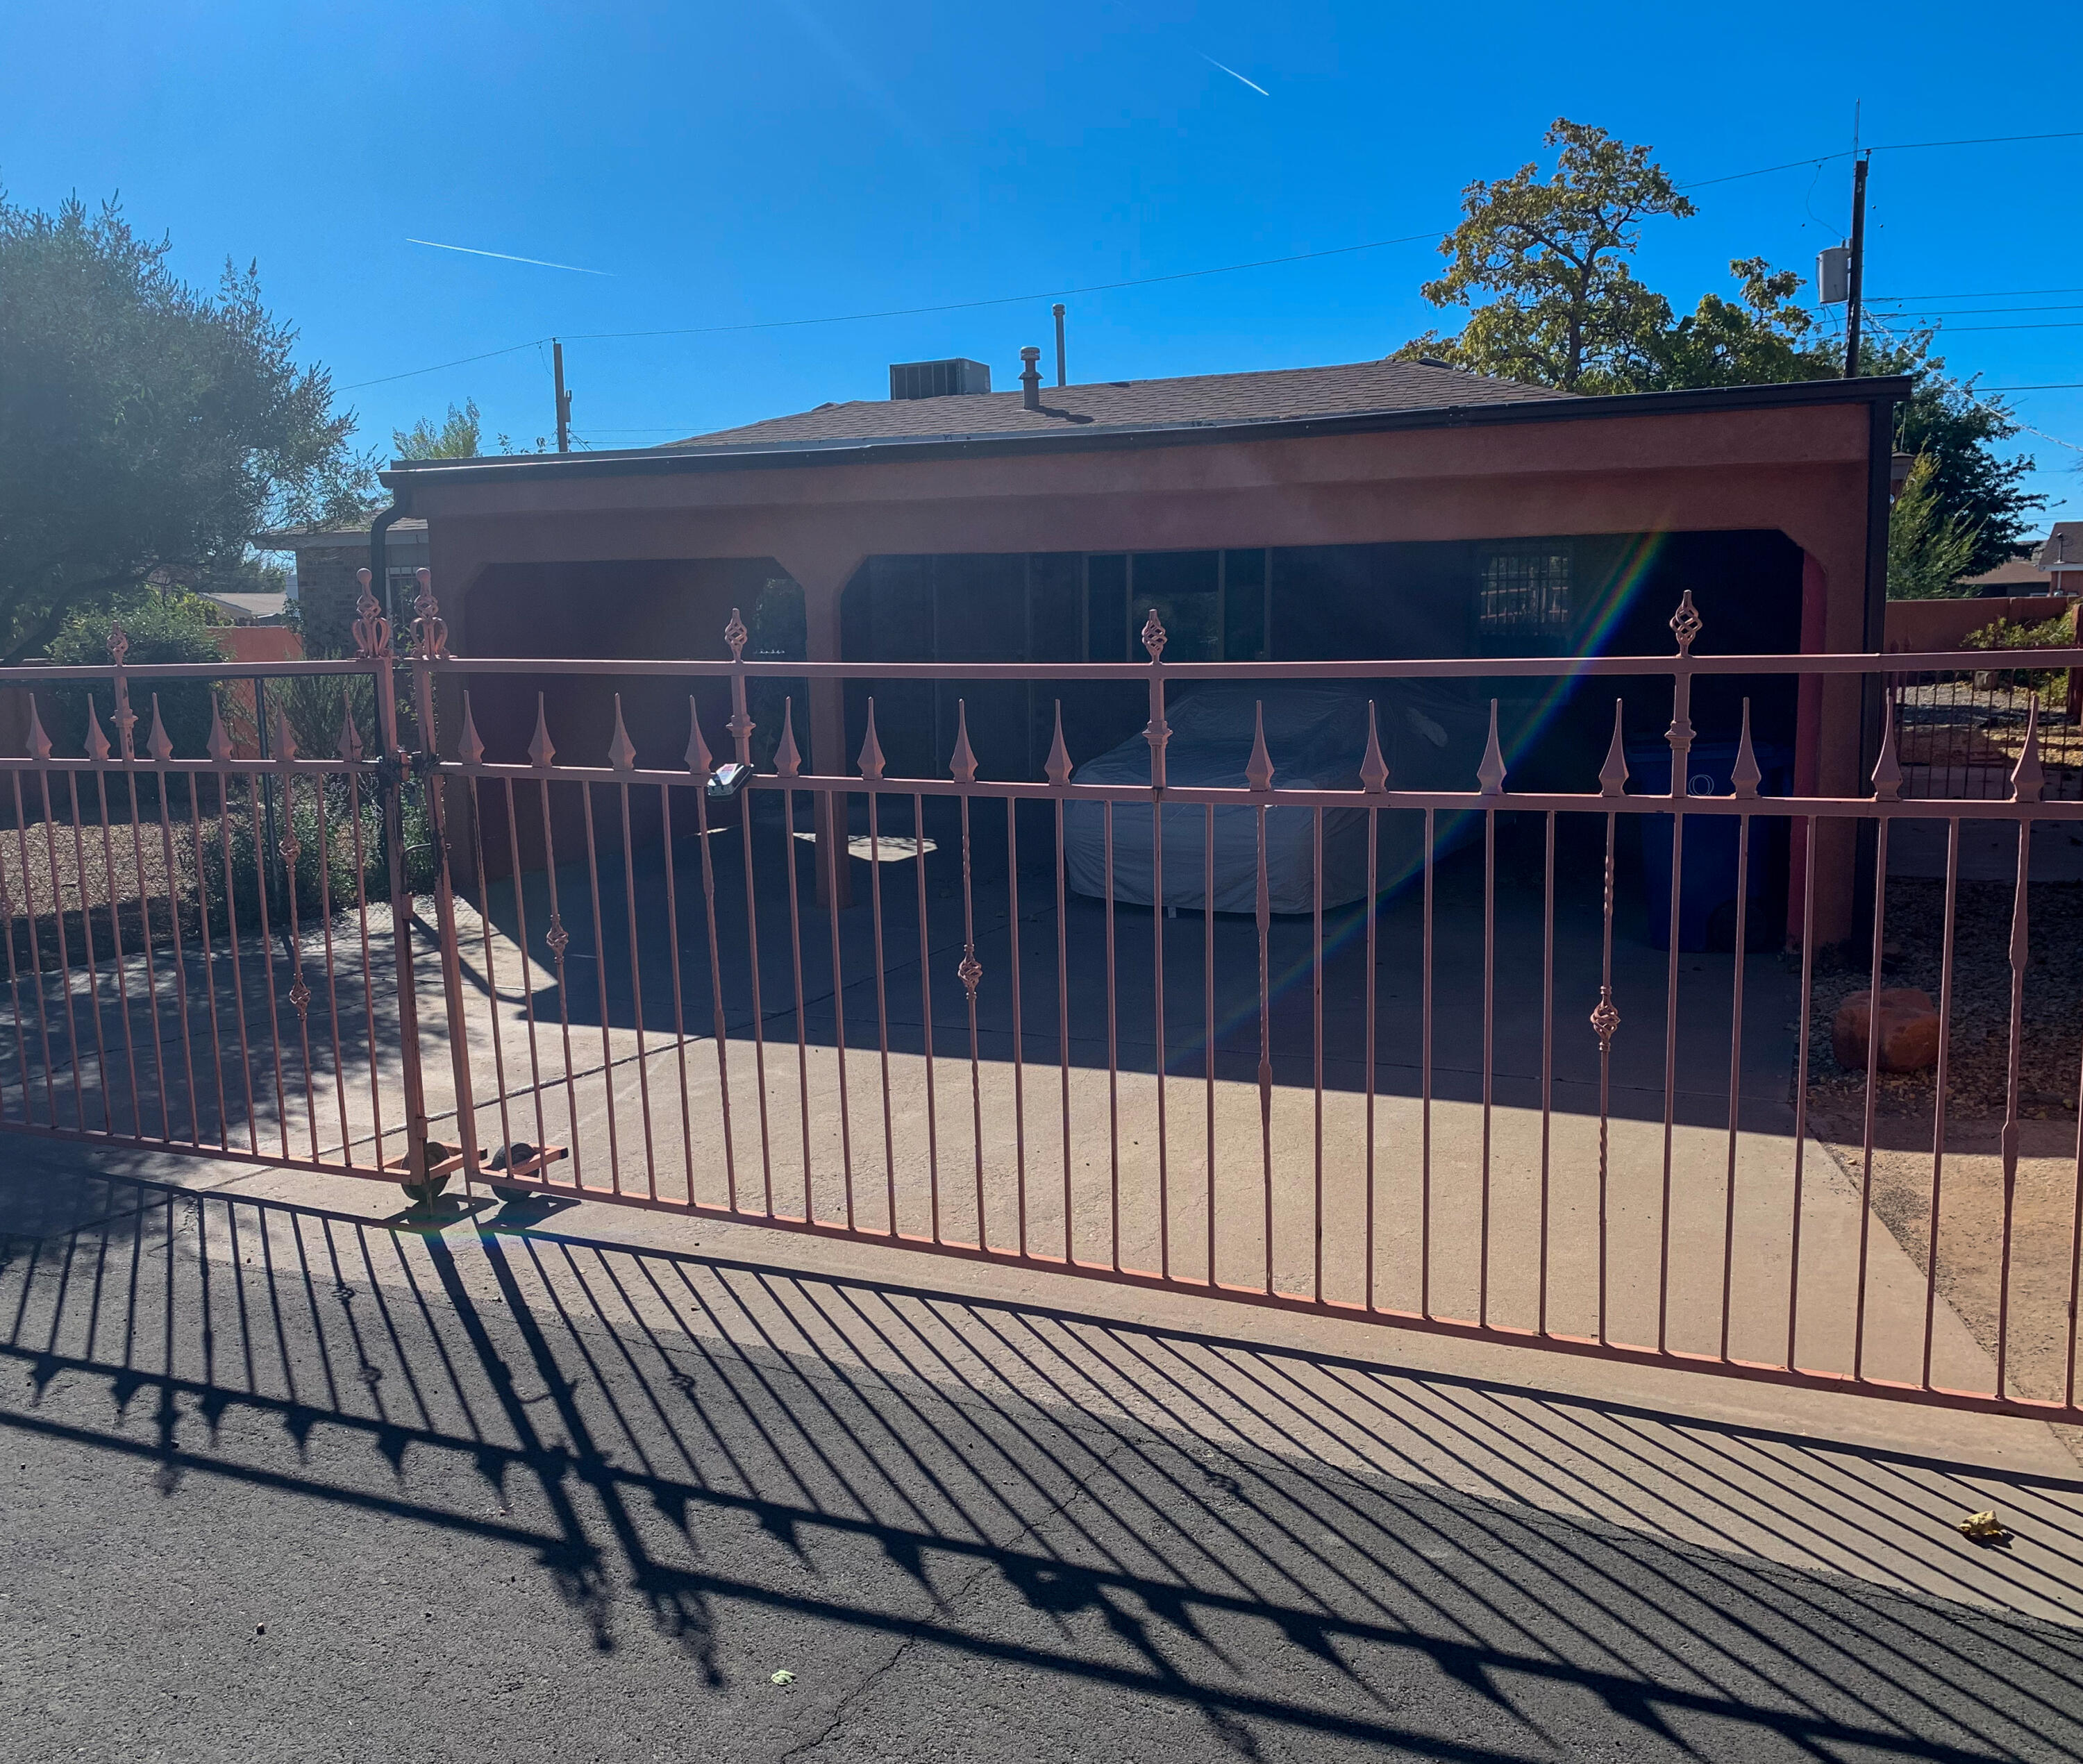 This spacious home is situated on a large lot with a private back yard.  There is a tremendous amount of development in the area, shopping, restaurants and much more. The property needs some TLC and is being sold as is.